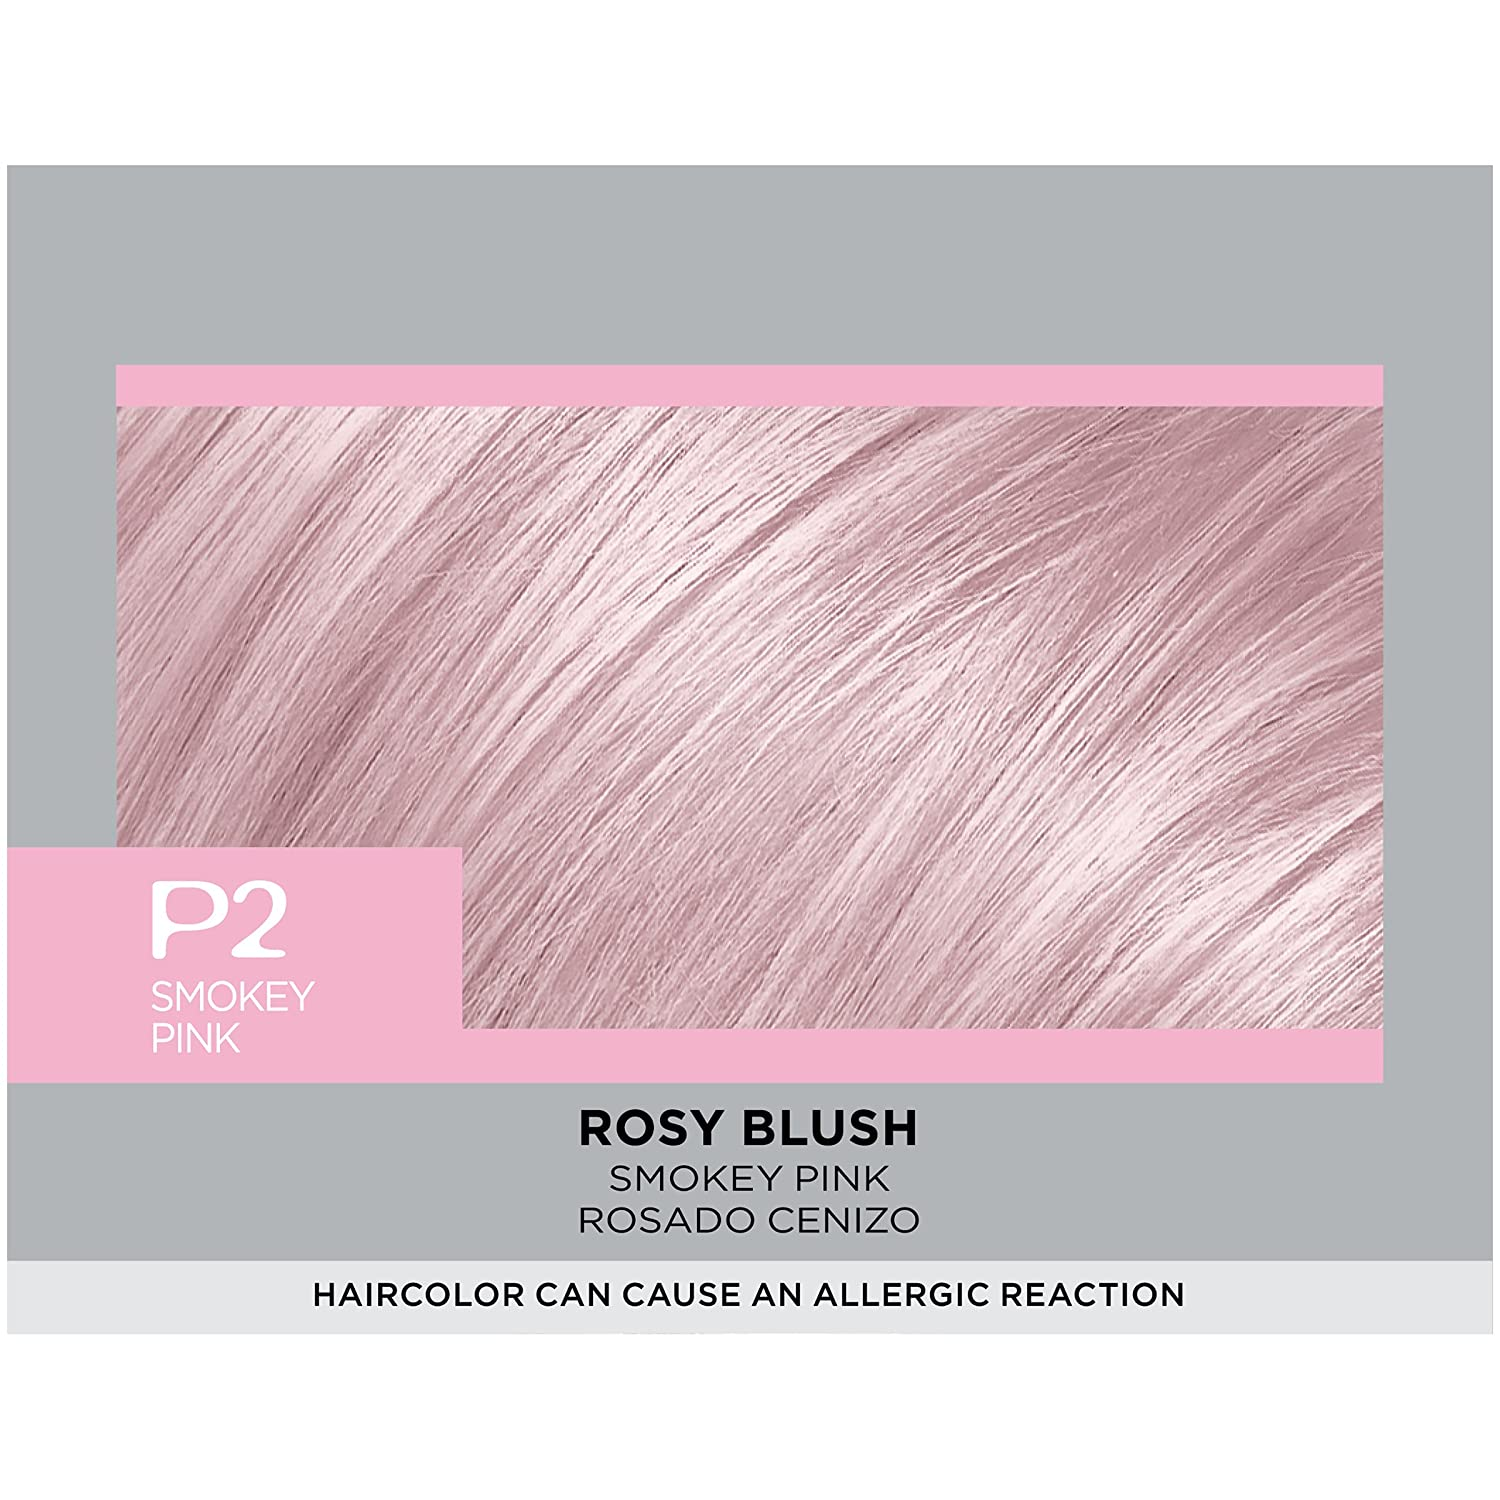 The look at home using l oreal paris feria smokey pastels in p2 smokey - Amazon Com L Or Al Paris Feria Pastels Hair Color P2 Rosy Blush Smokey Pink Beauty